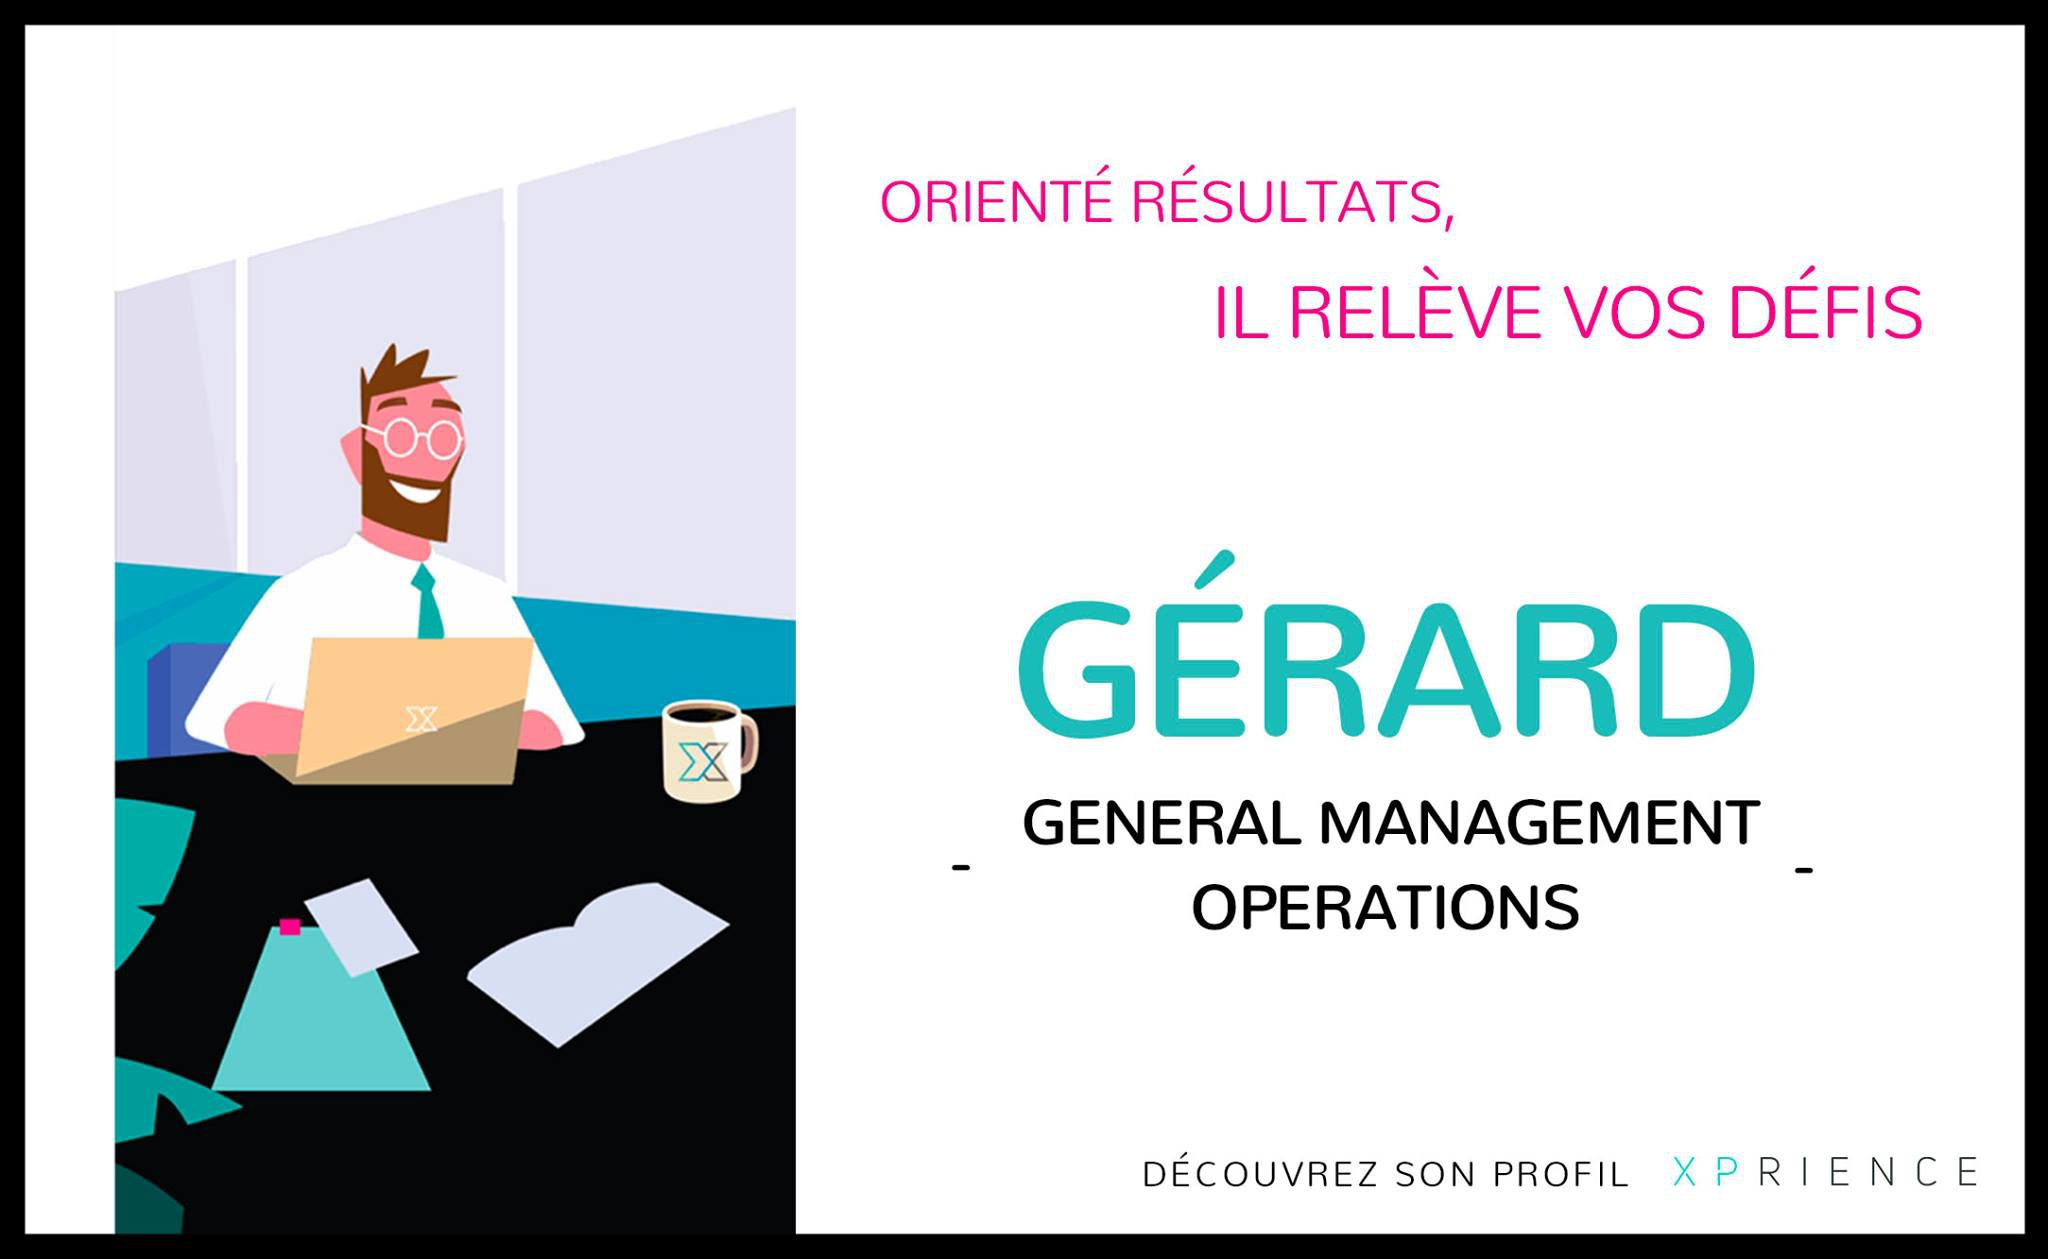 general management - operations